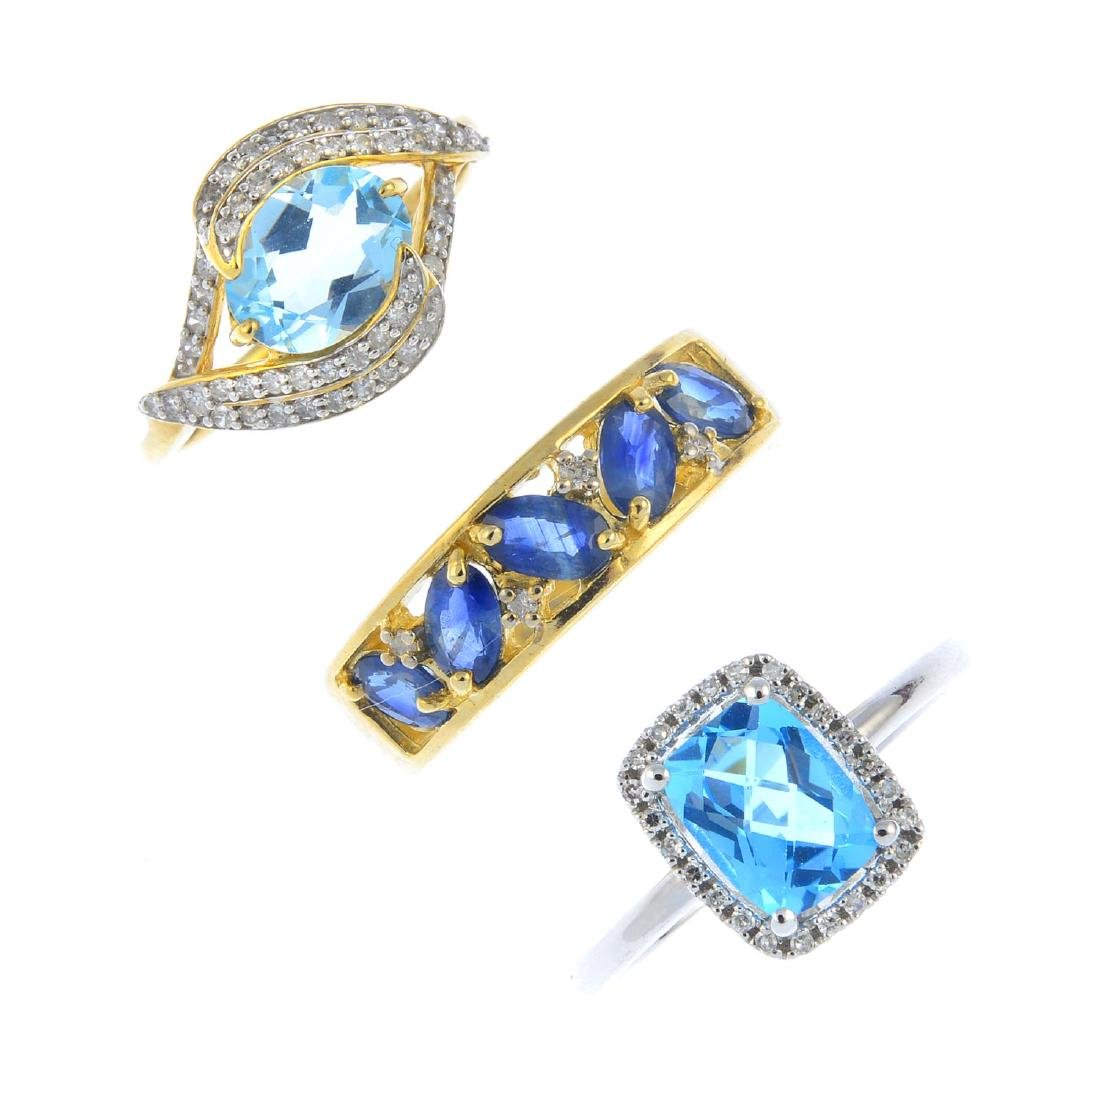 Three 9ct gold diamond and gem-set rings. To include a